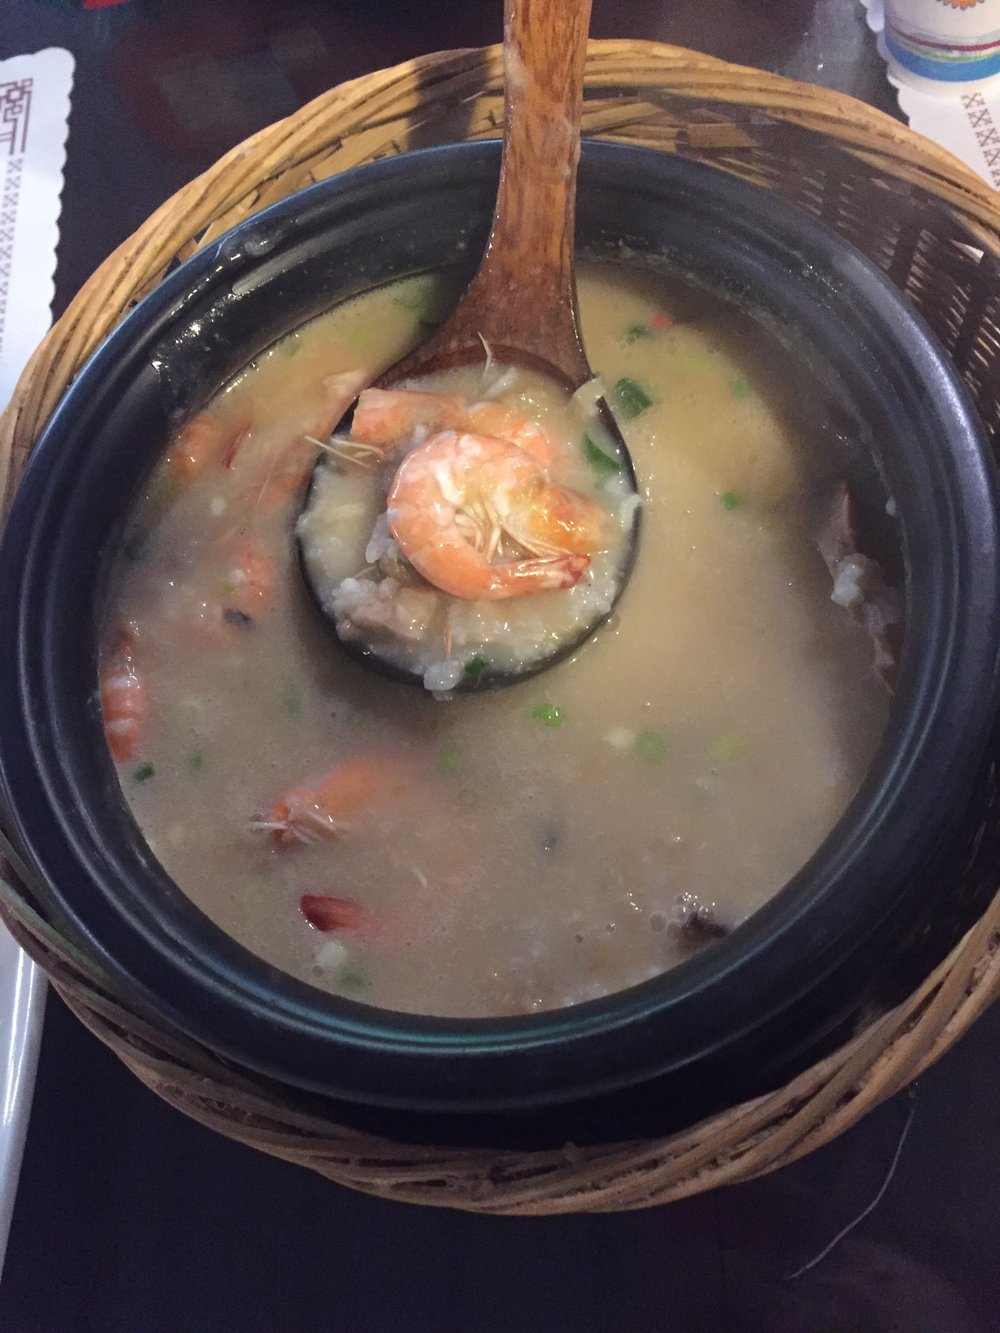 Seasonal Red Crab and seafood porridge. MUST ORDER! The seafood porridge is slowly cooked in claypot and filled with generous helpings of red crab, shrimp, and mushrooms.